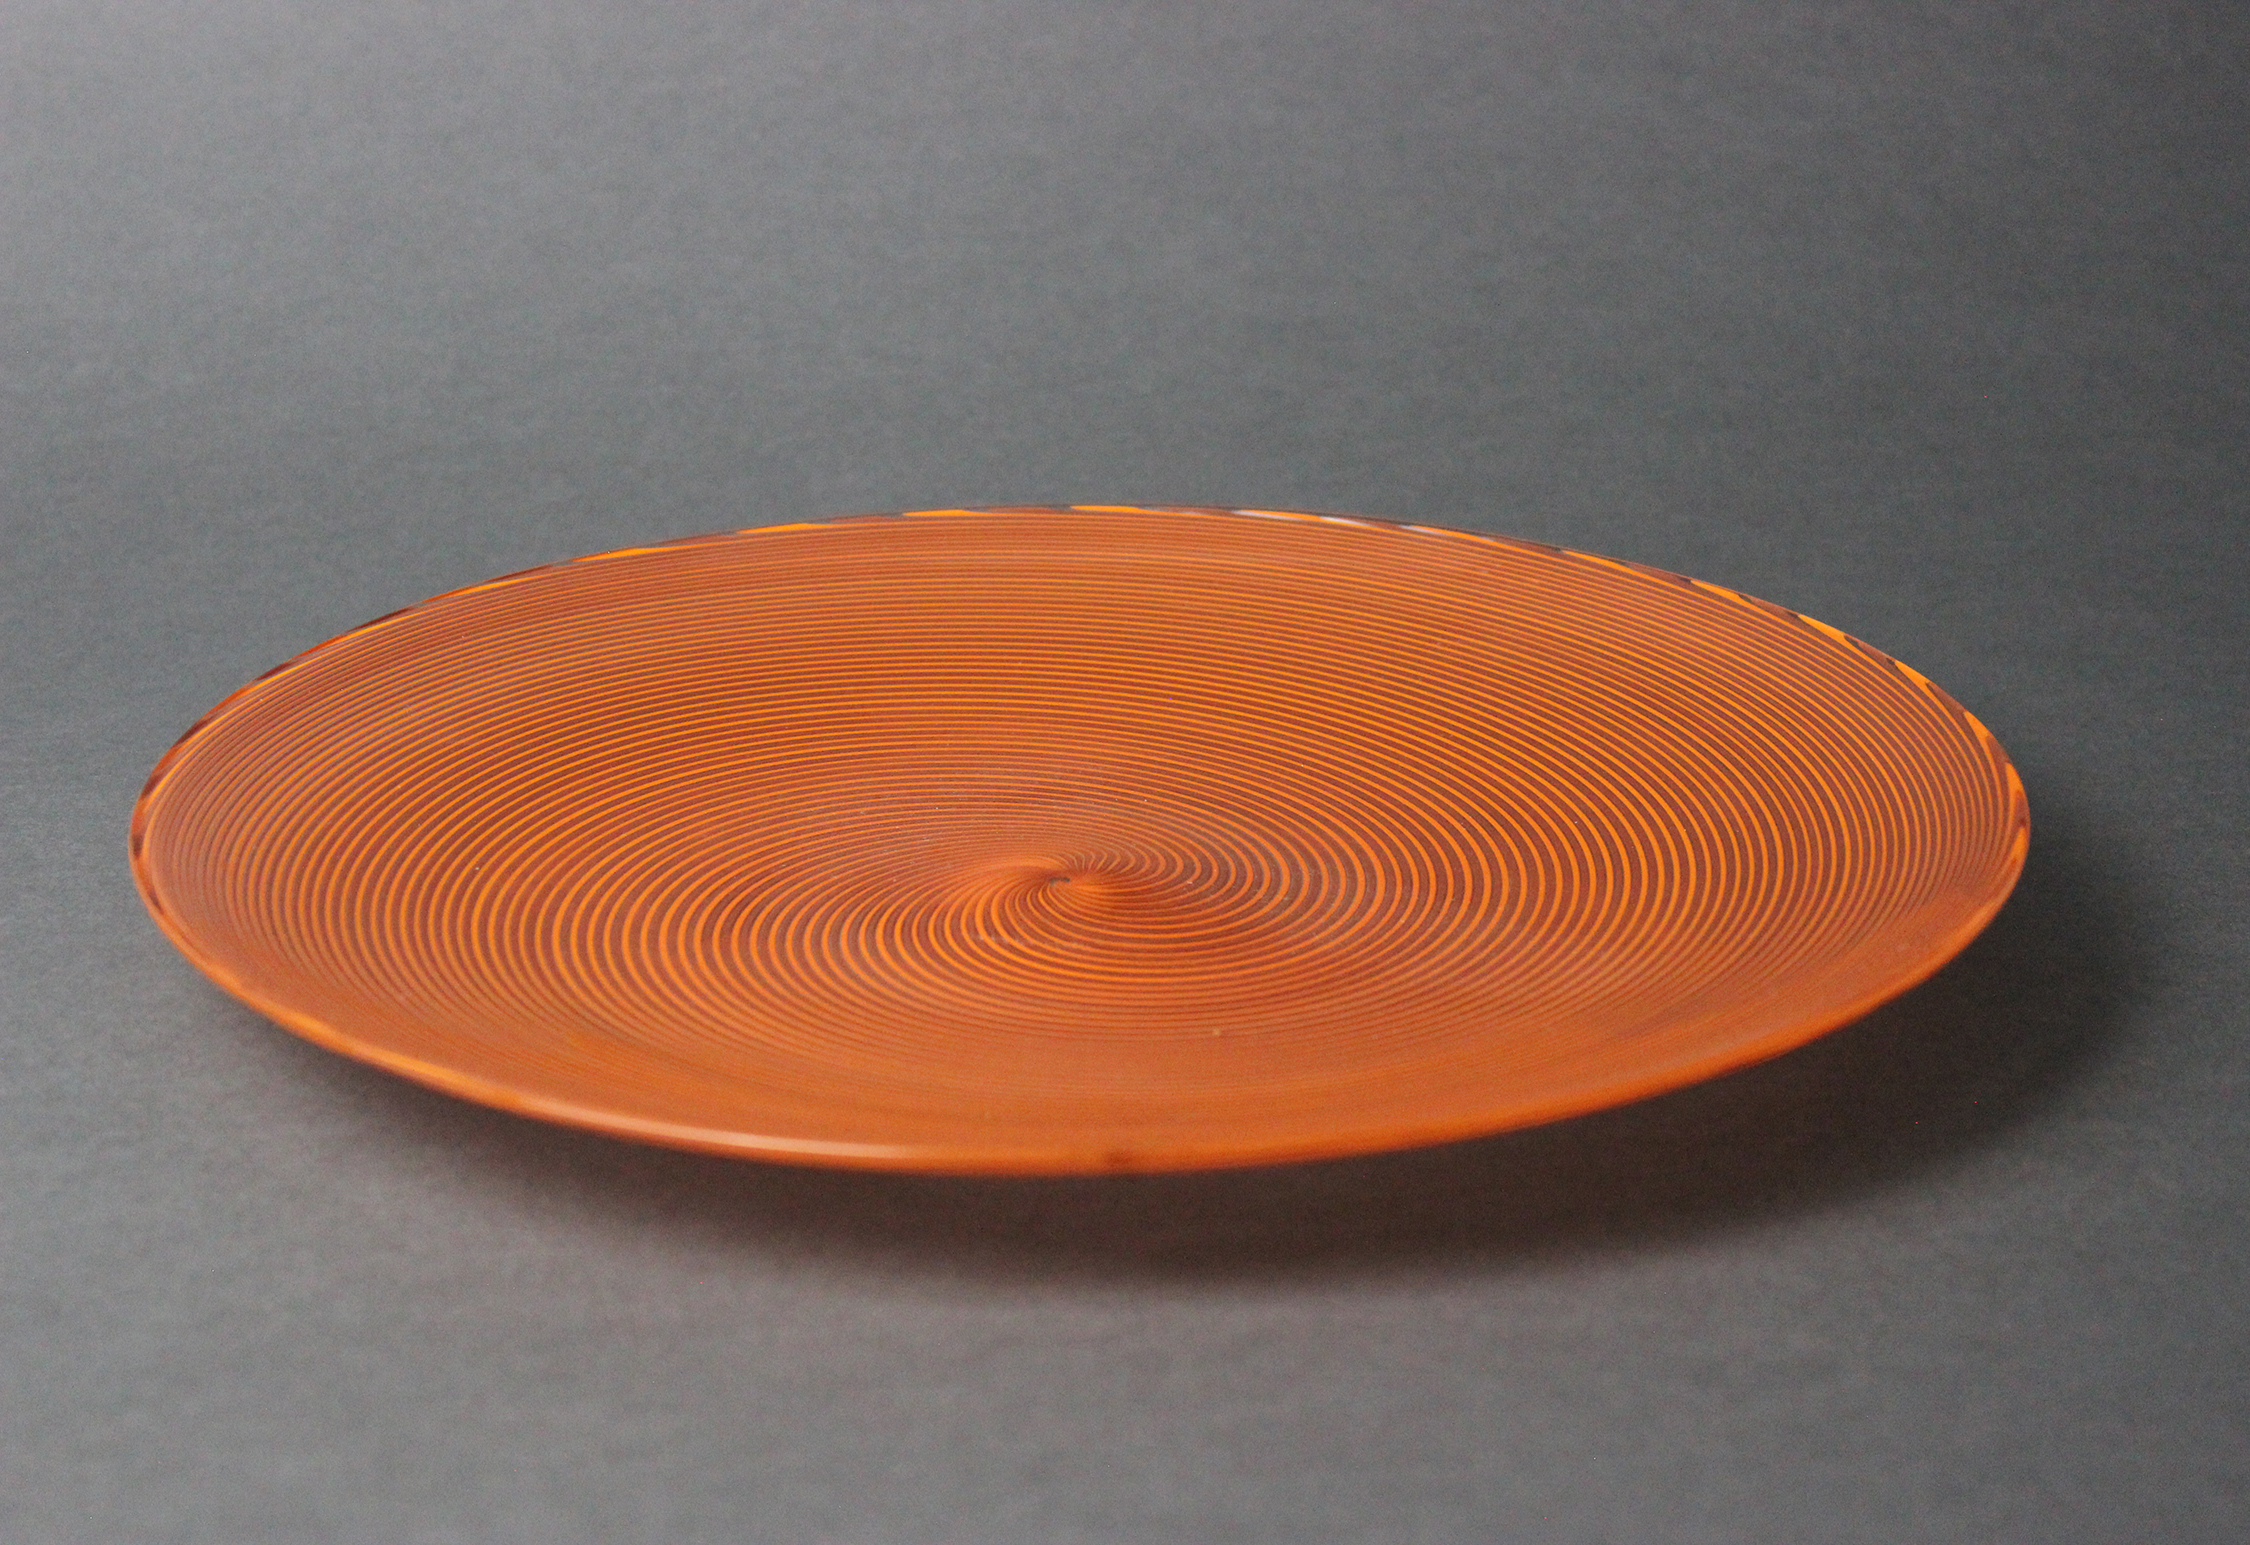 Venini Platter - Will Prindle Collection